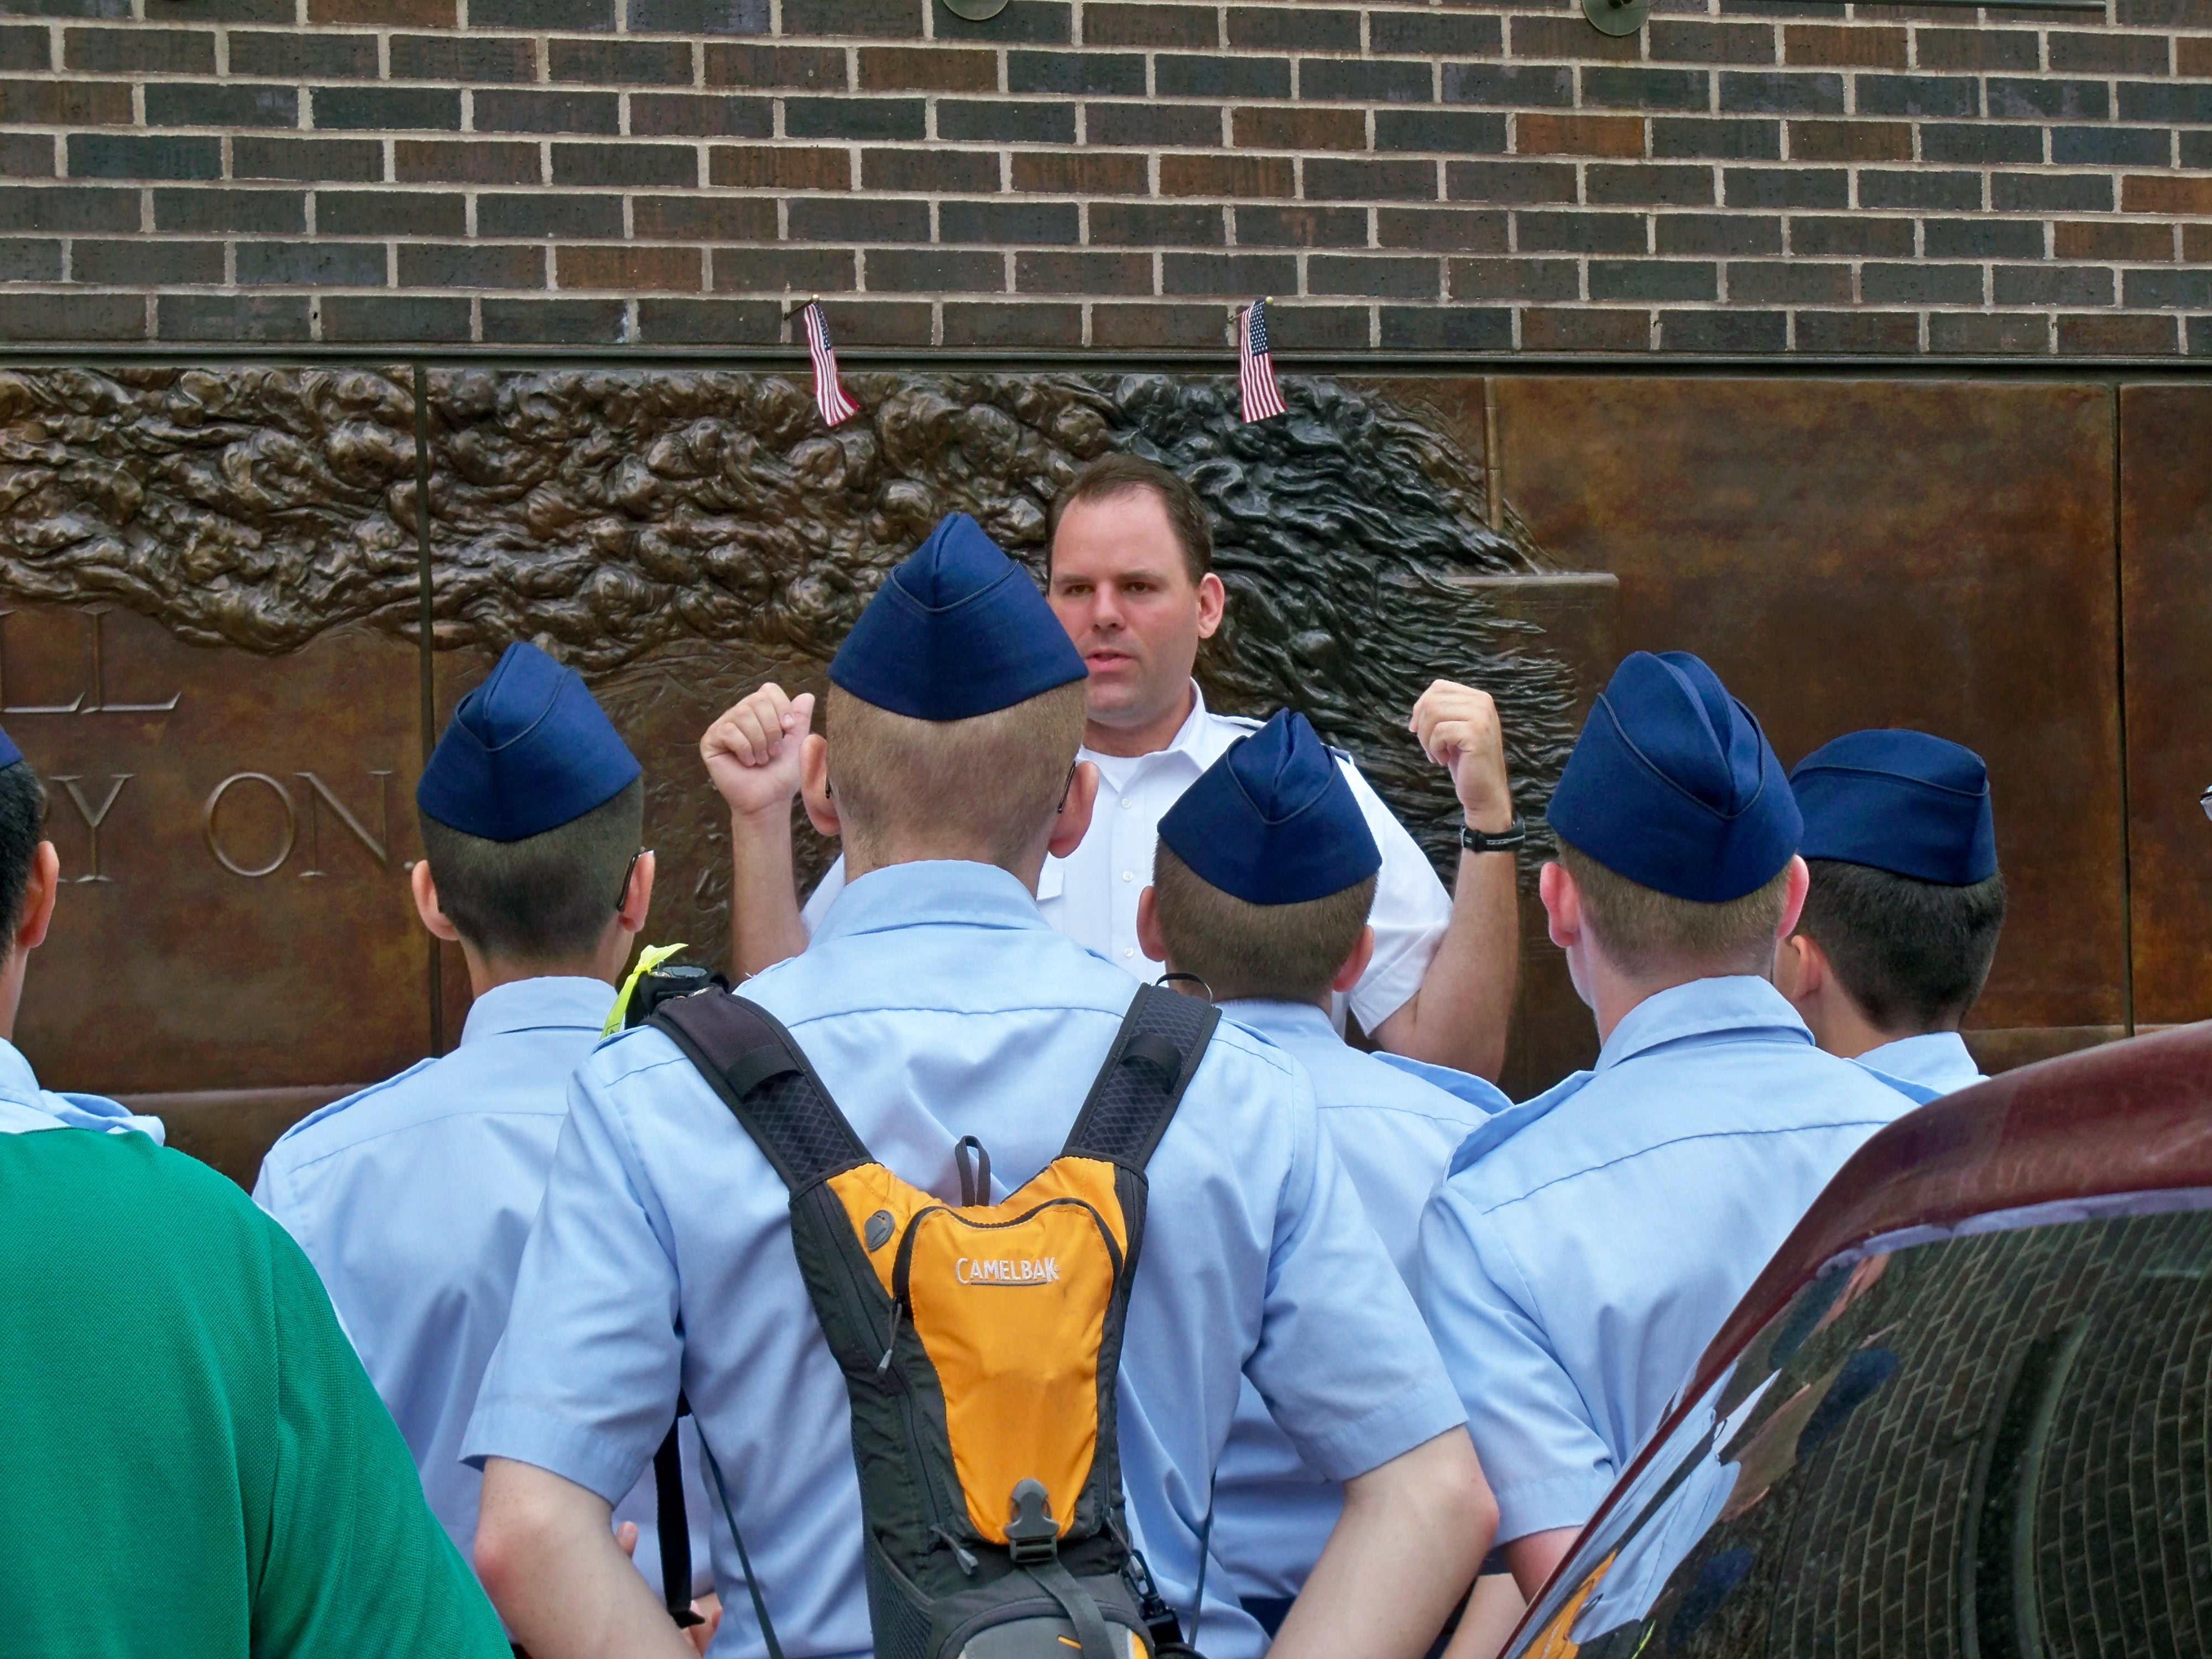 Lt. Roberts leads cadets on a visit to Ground Zero memorial